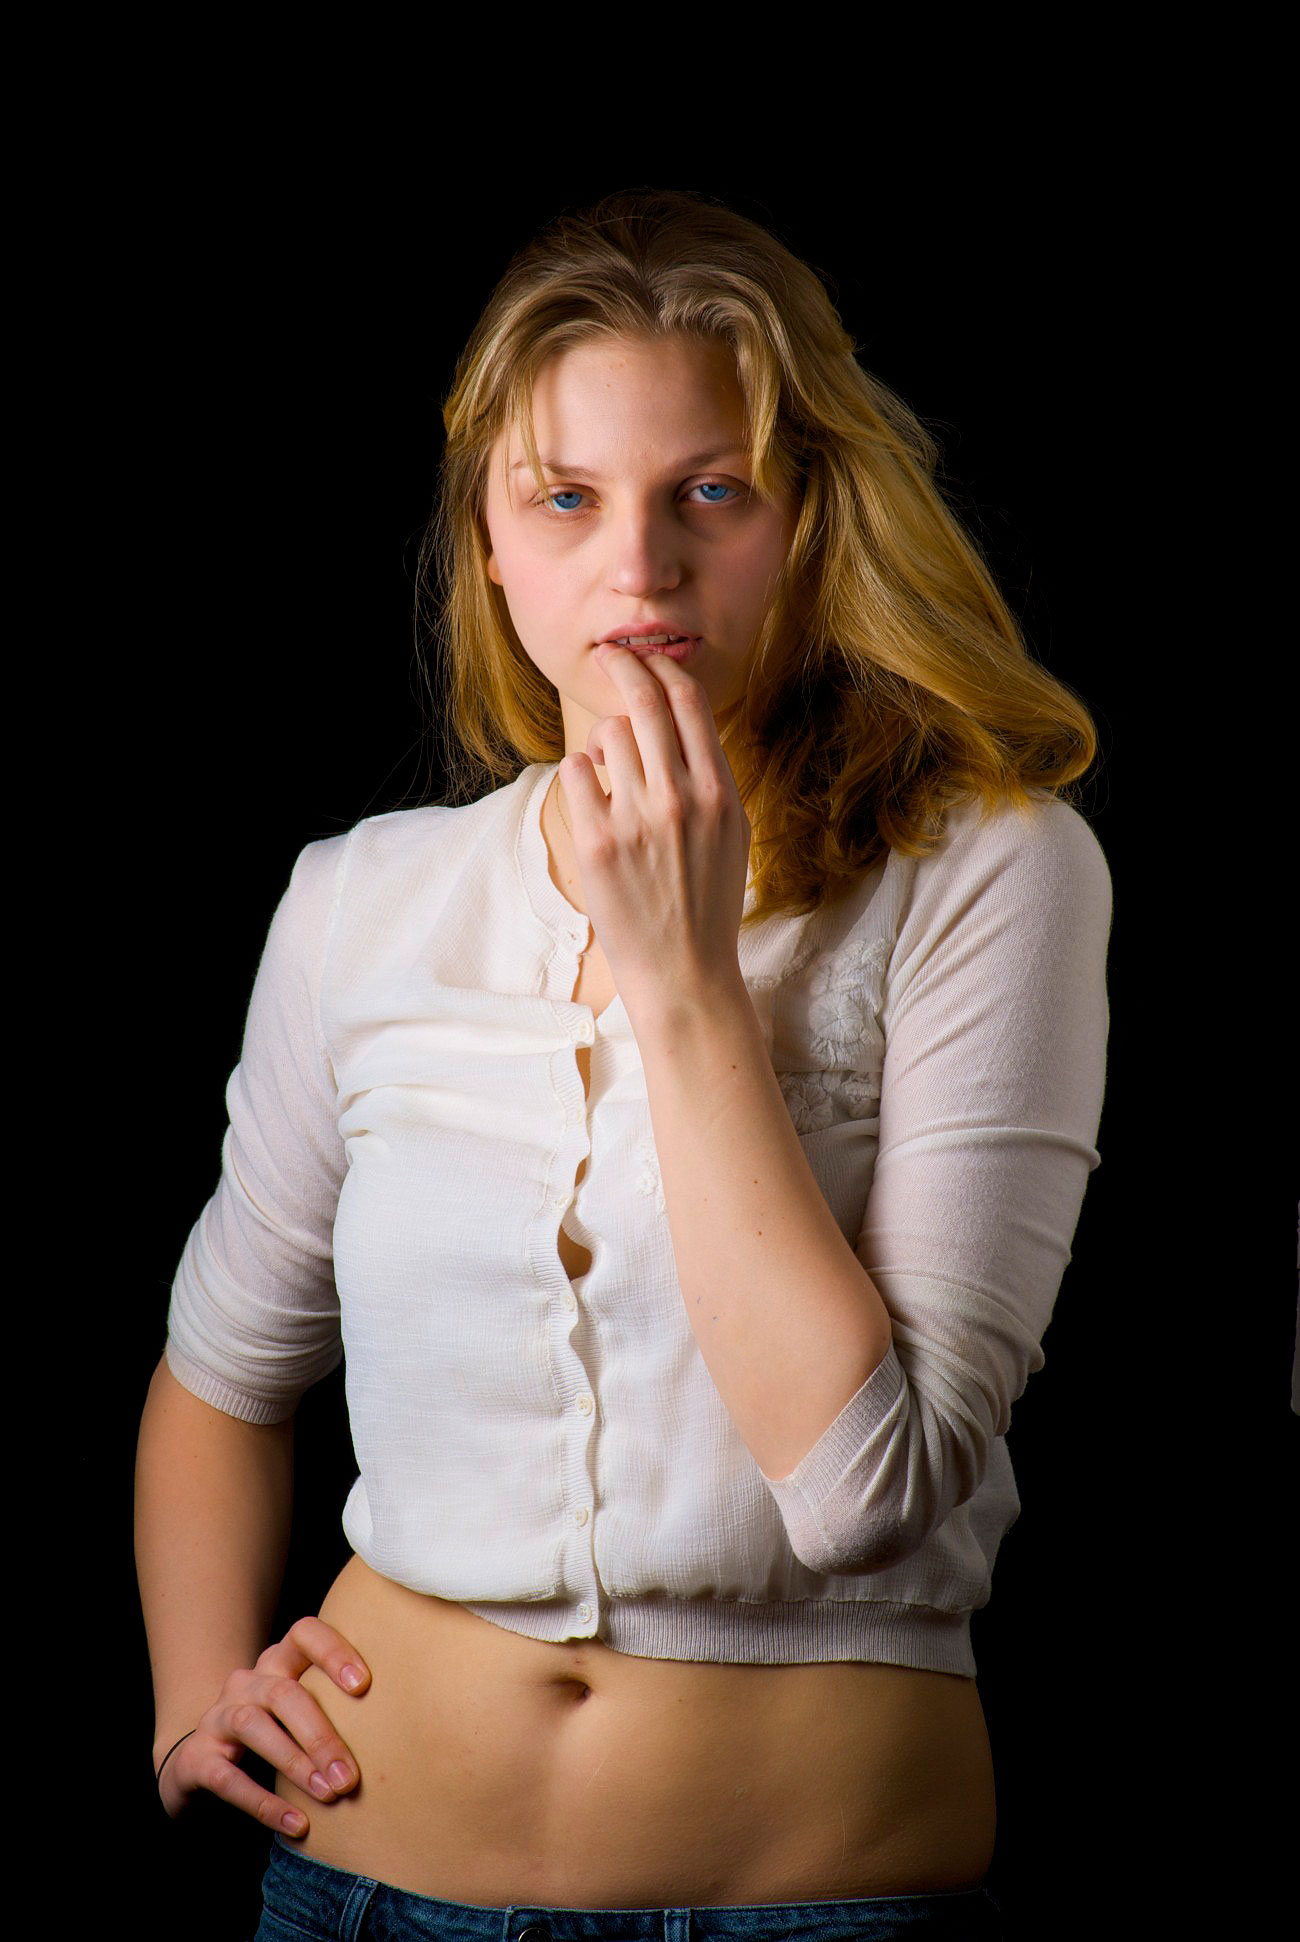 young model  in studio.jpg